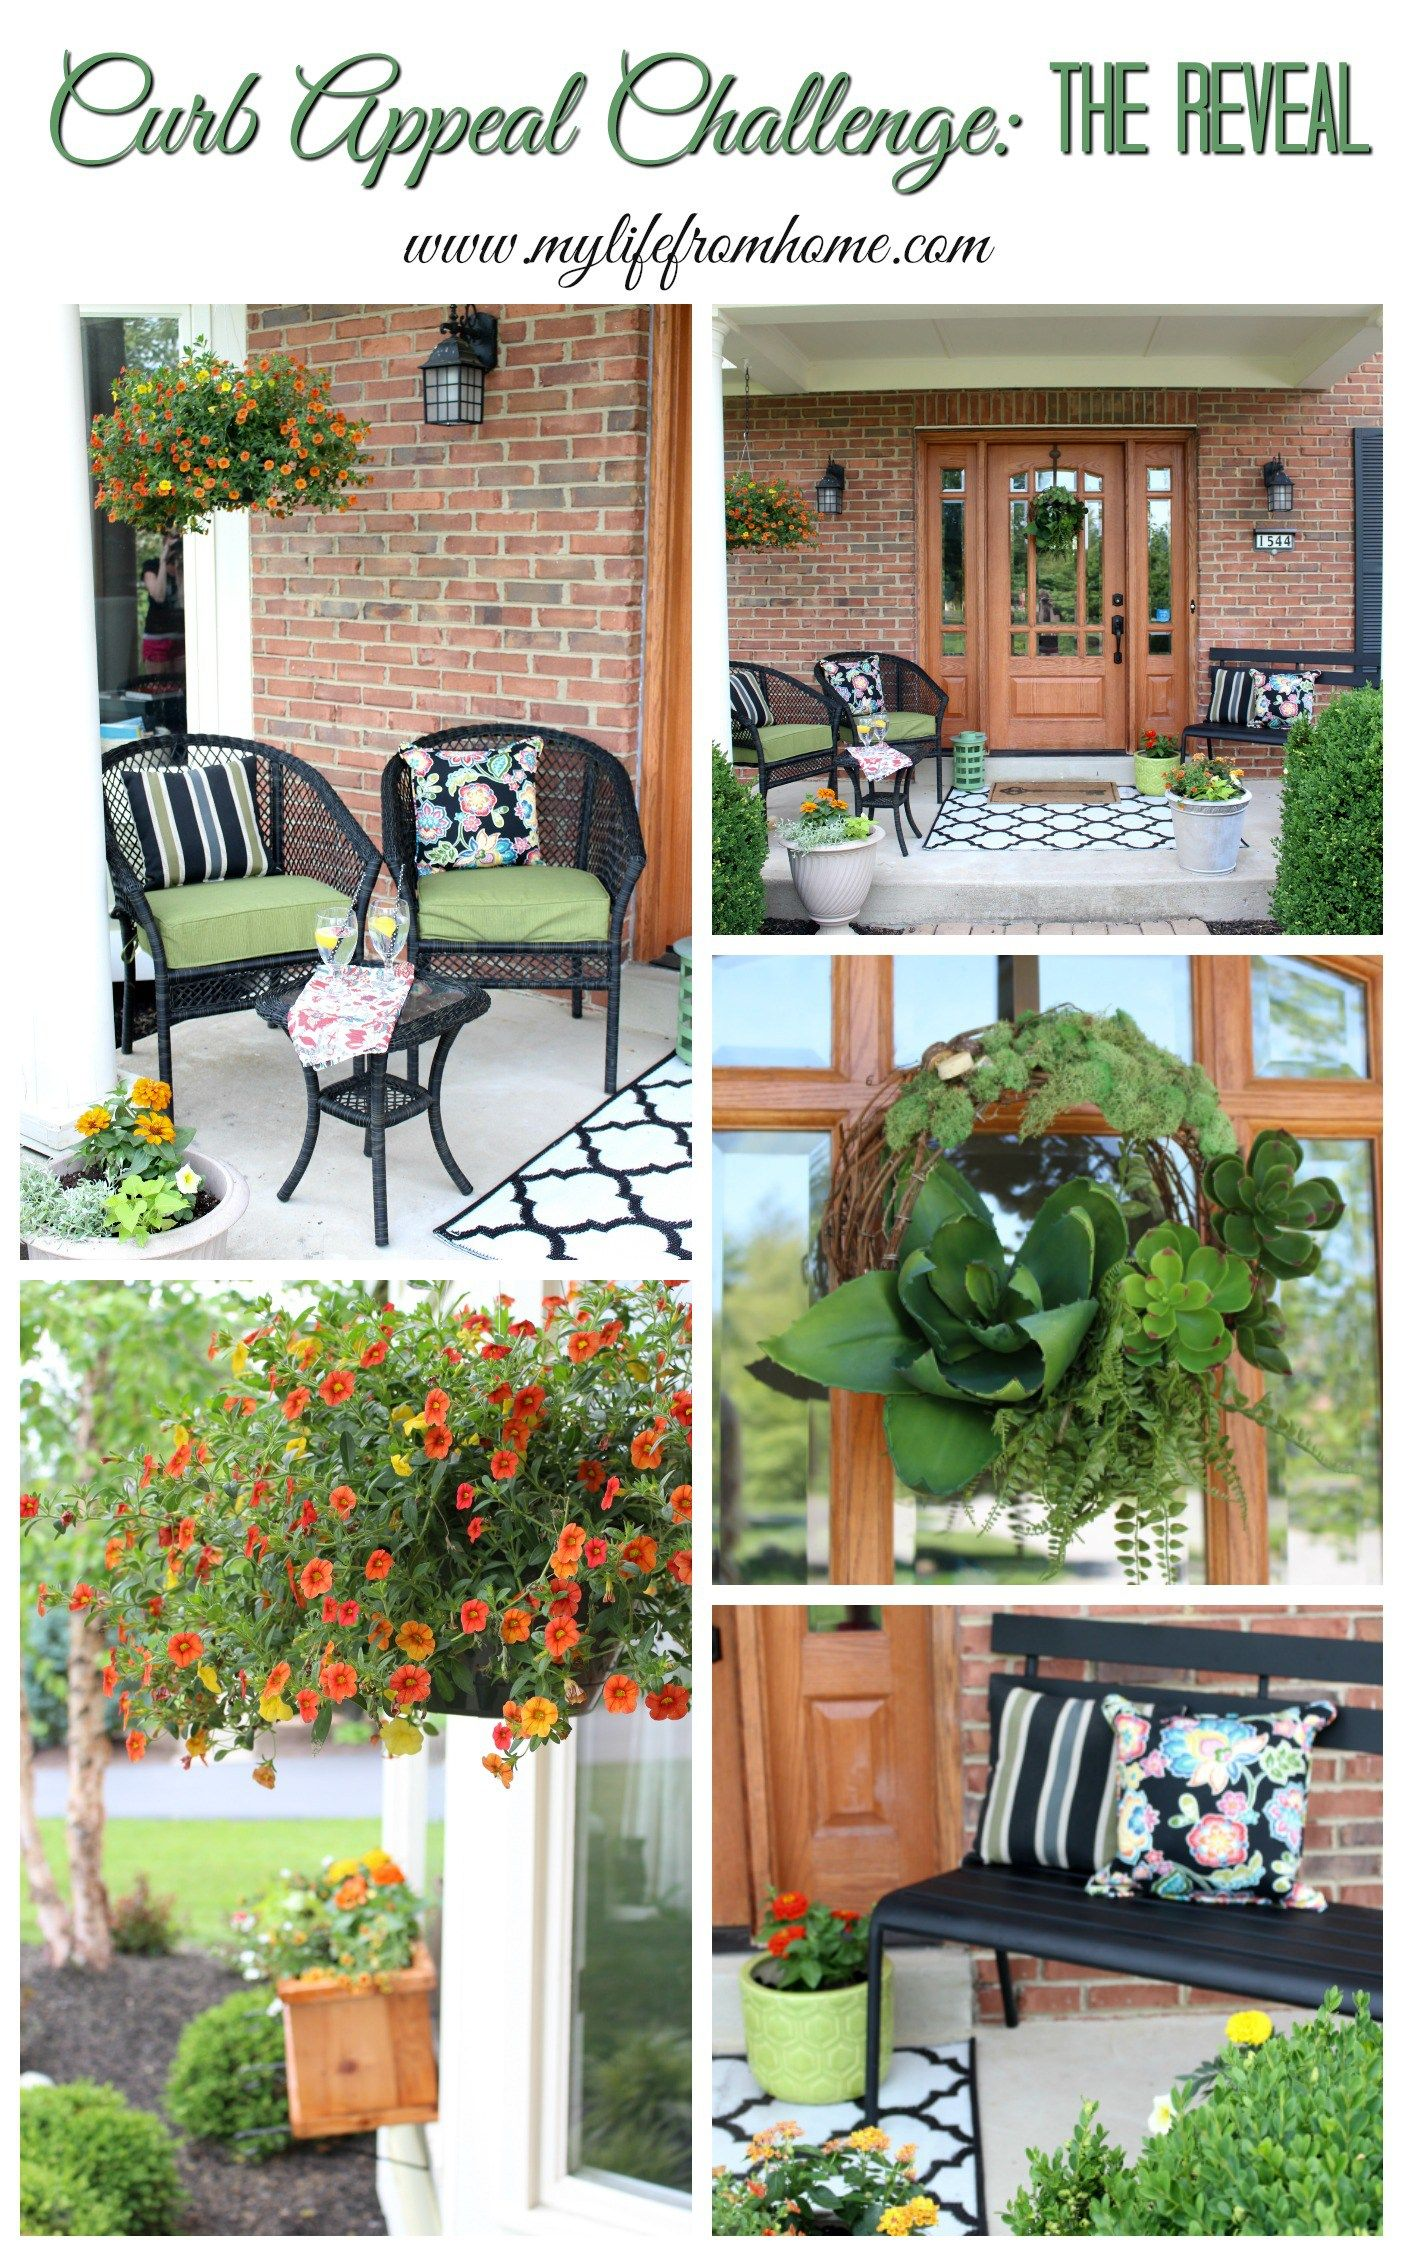 Landscaping ideas for front yard with porch  Design challenge to give my house much needed Curb Appeal Come see